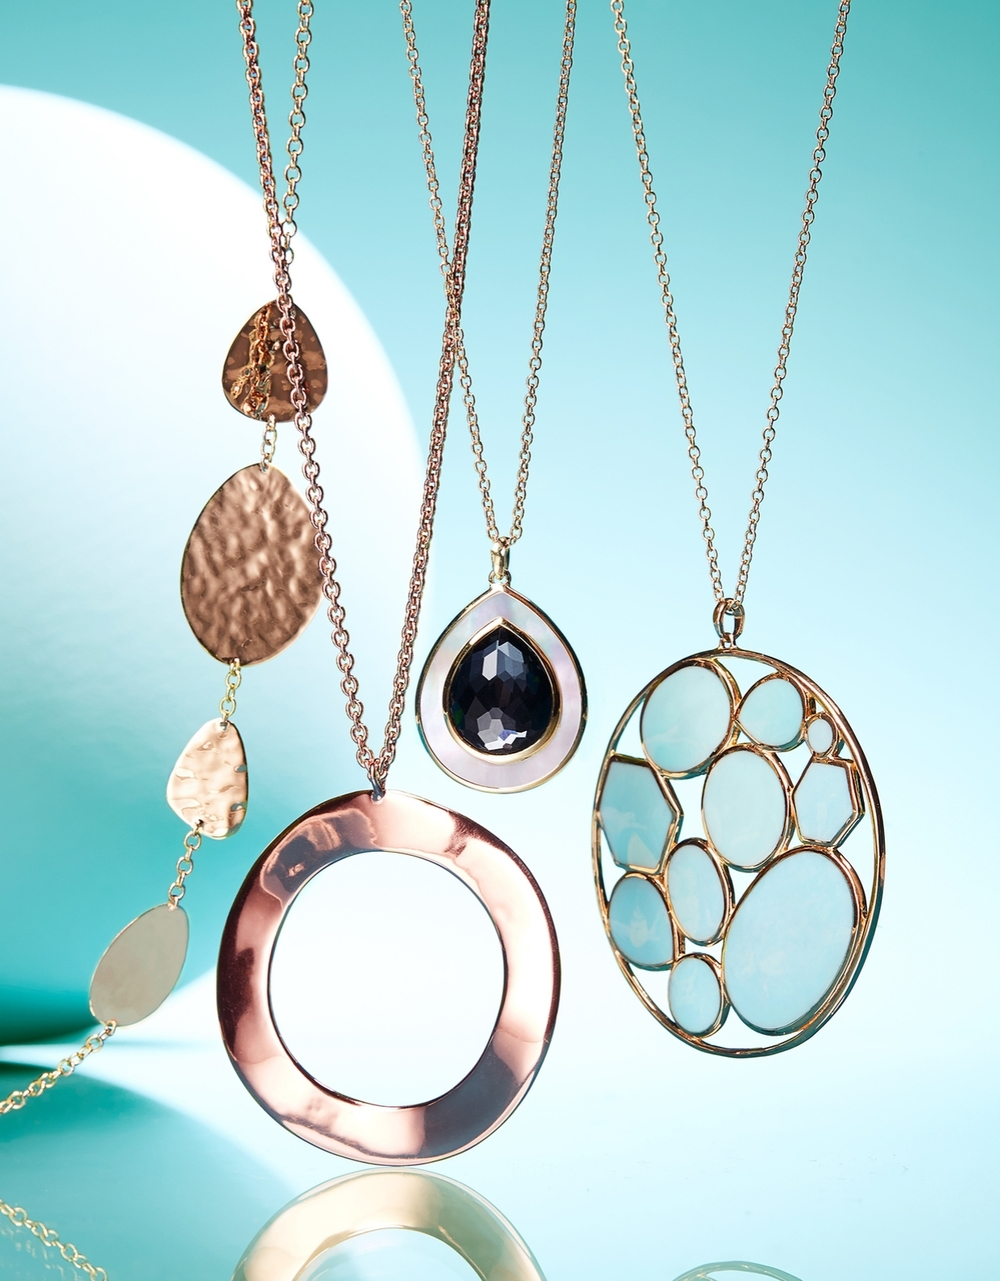 ippolita+necklaces.jpg